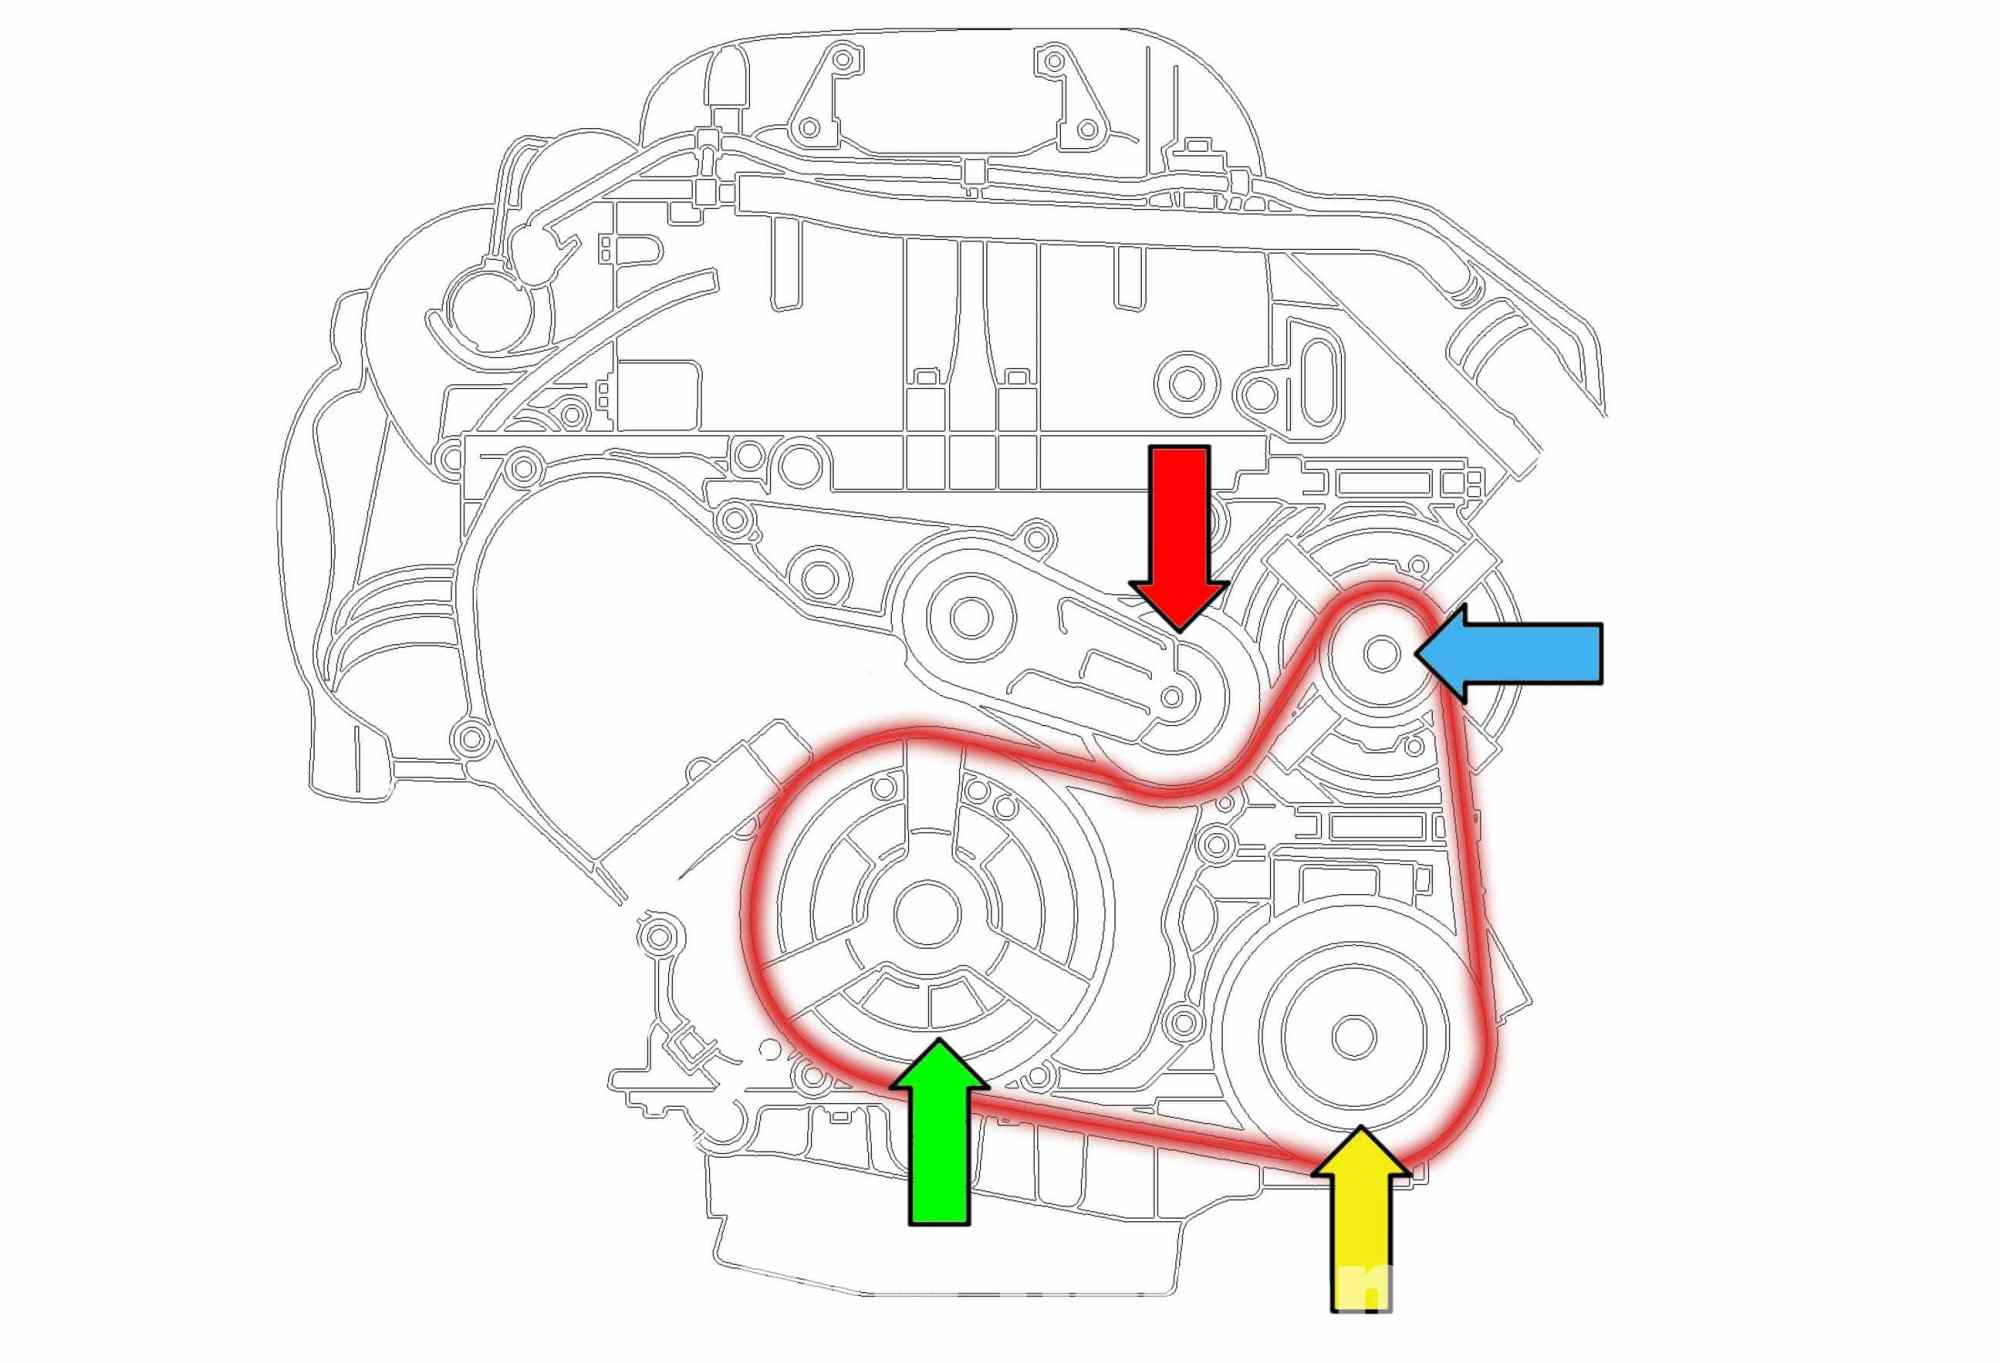 hight resolution of saab 9 3 drive belt replacement 2006 2007 pelican parts diy saab 9 3 custom saab 9 3 belt diagram